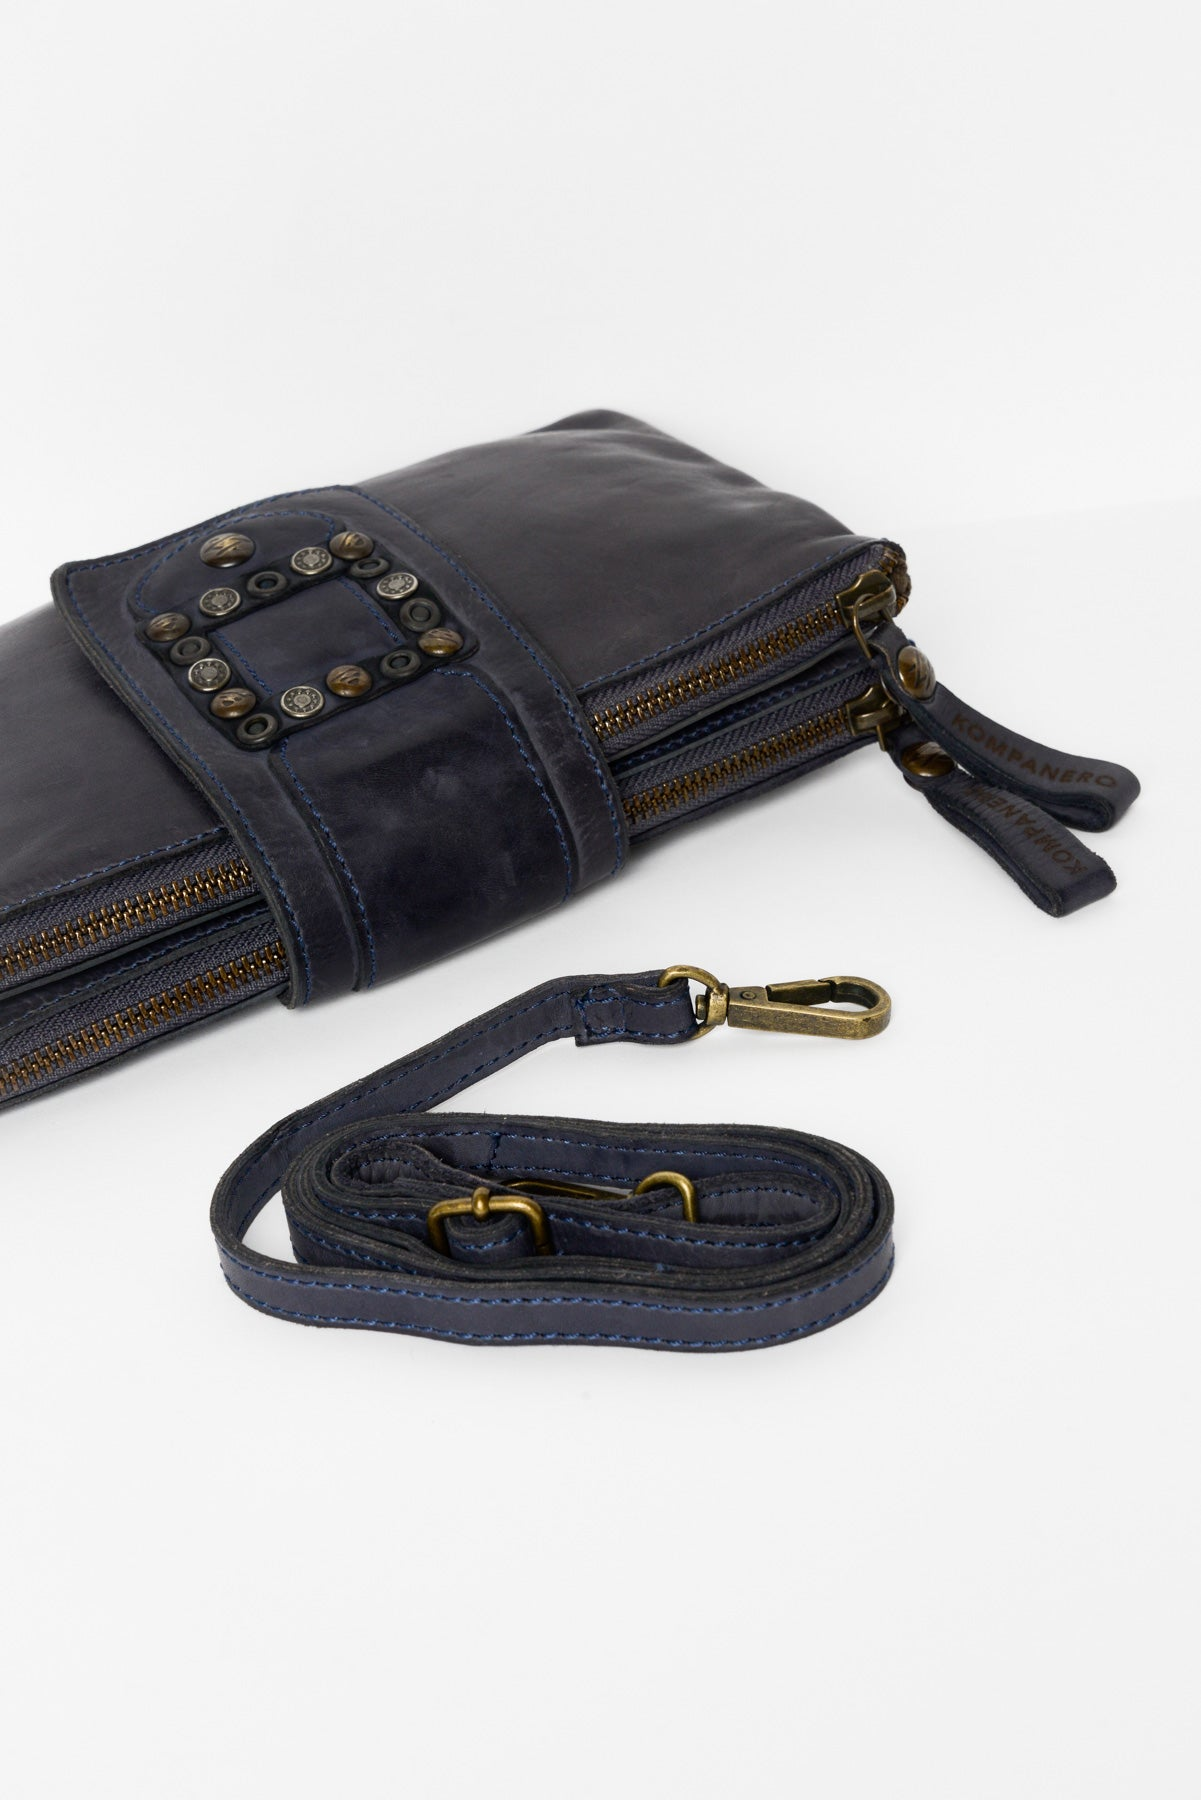 Flamina Navy Leather Clutch - Blue Bungalow